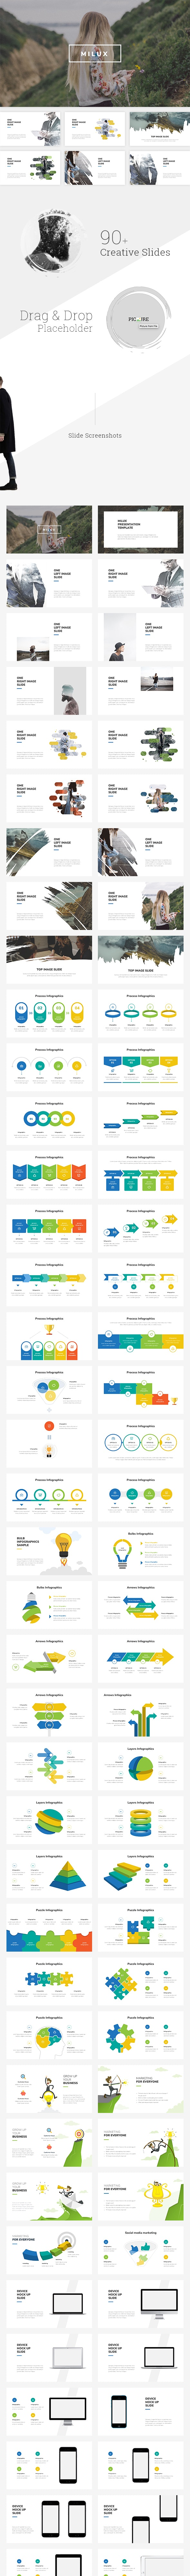 Milux Powerpoint Template - Creative PowerPoint Templates